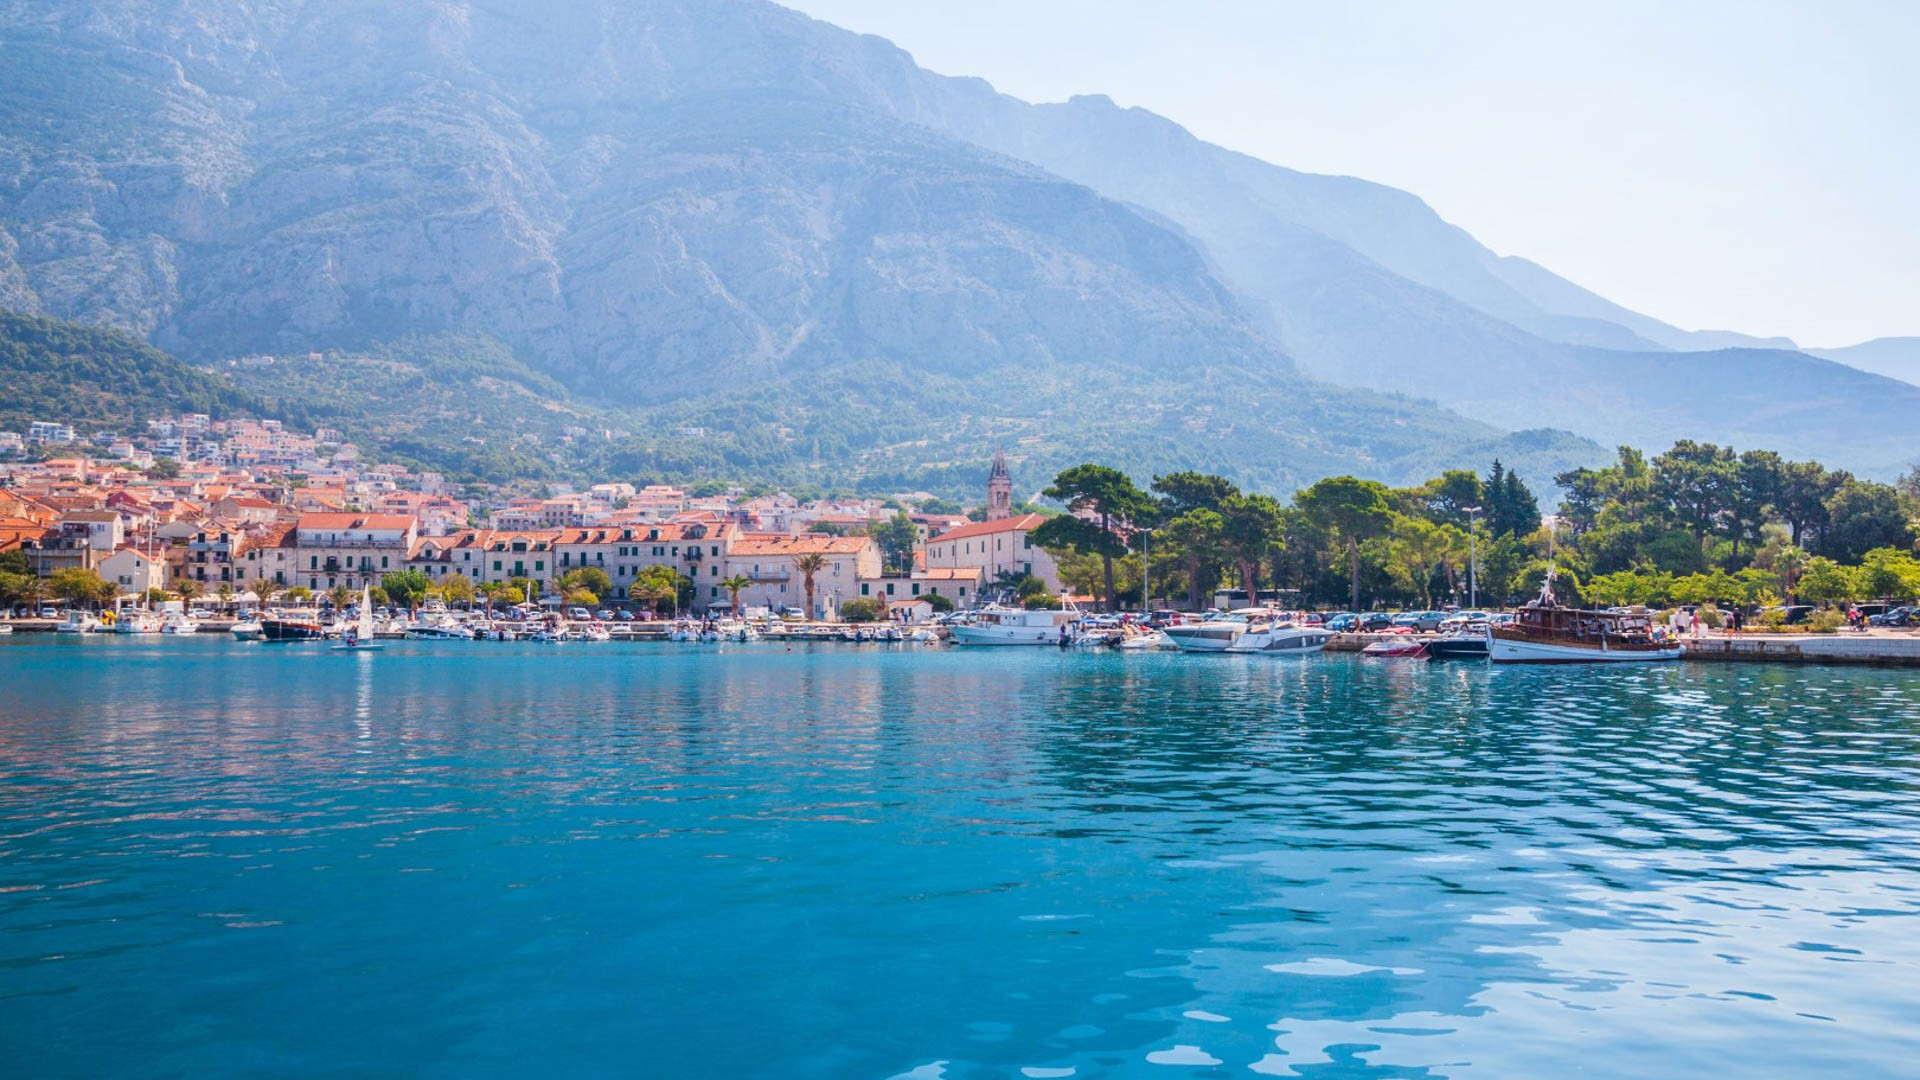 Makarska - Adriatic Sea | Croatia Cruise Croatia Cruise